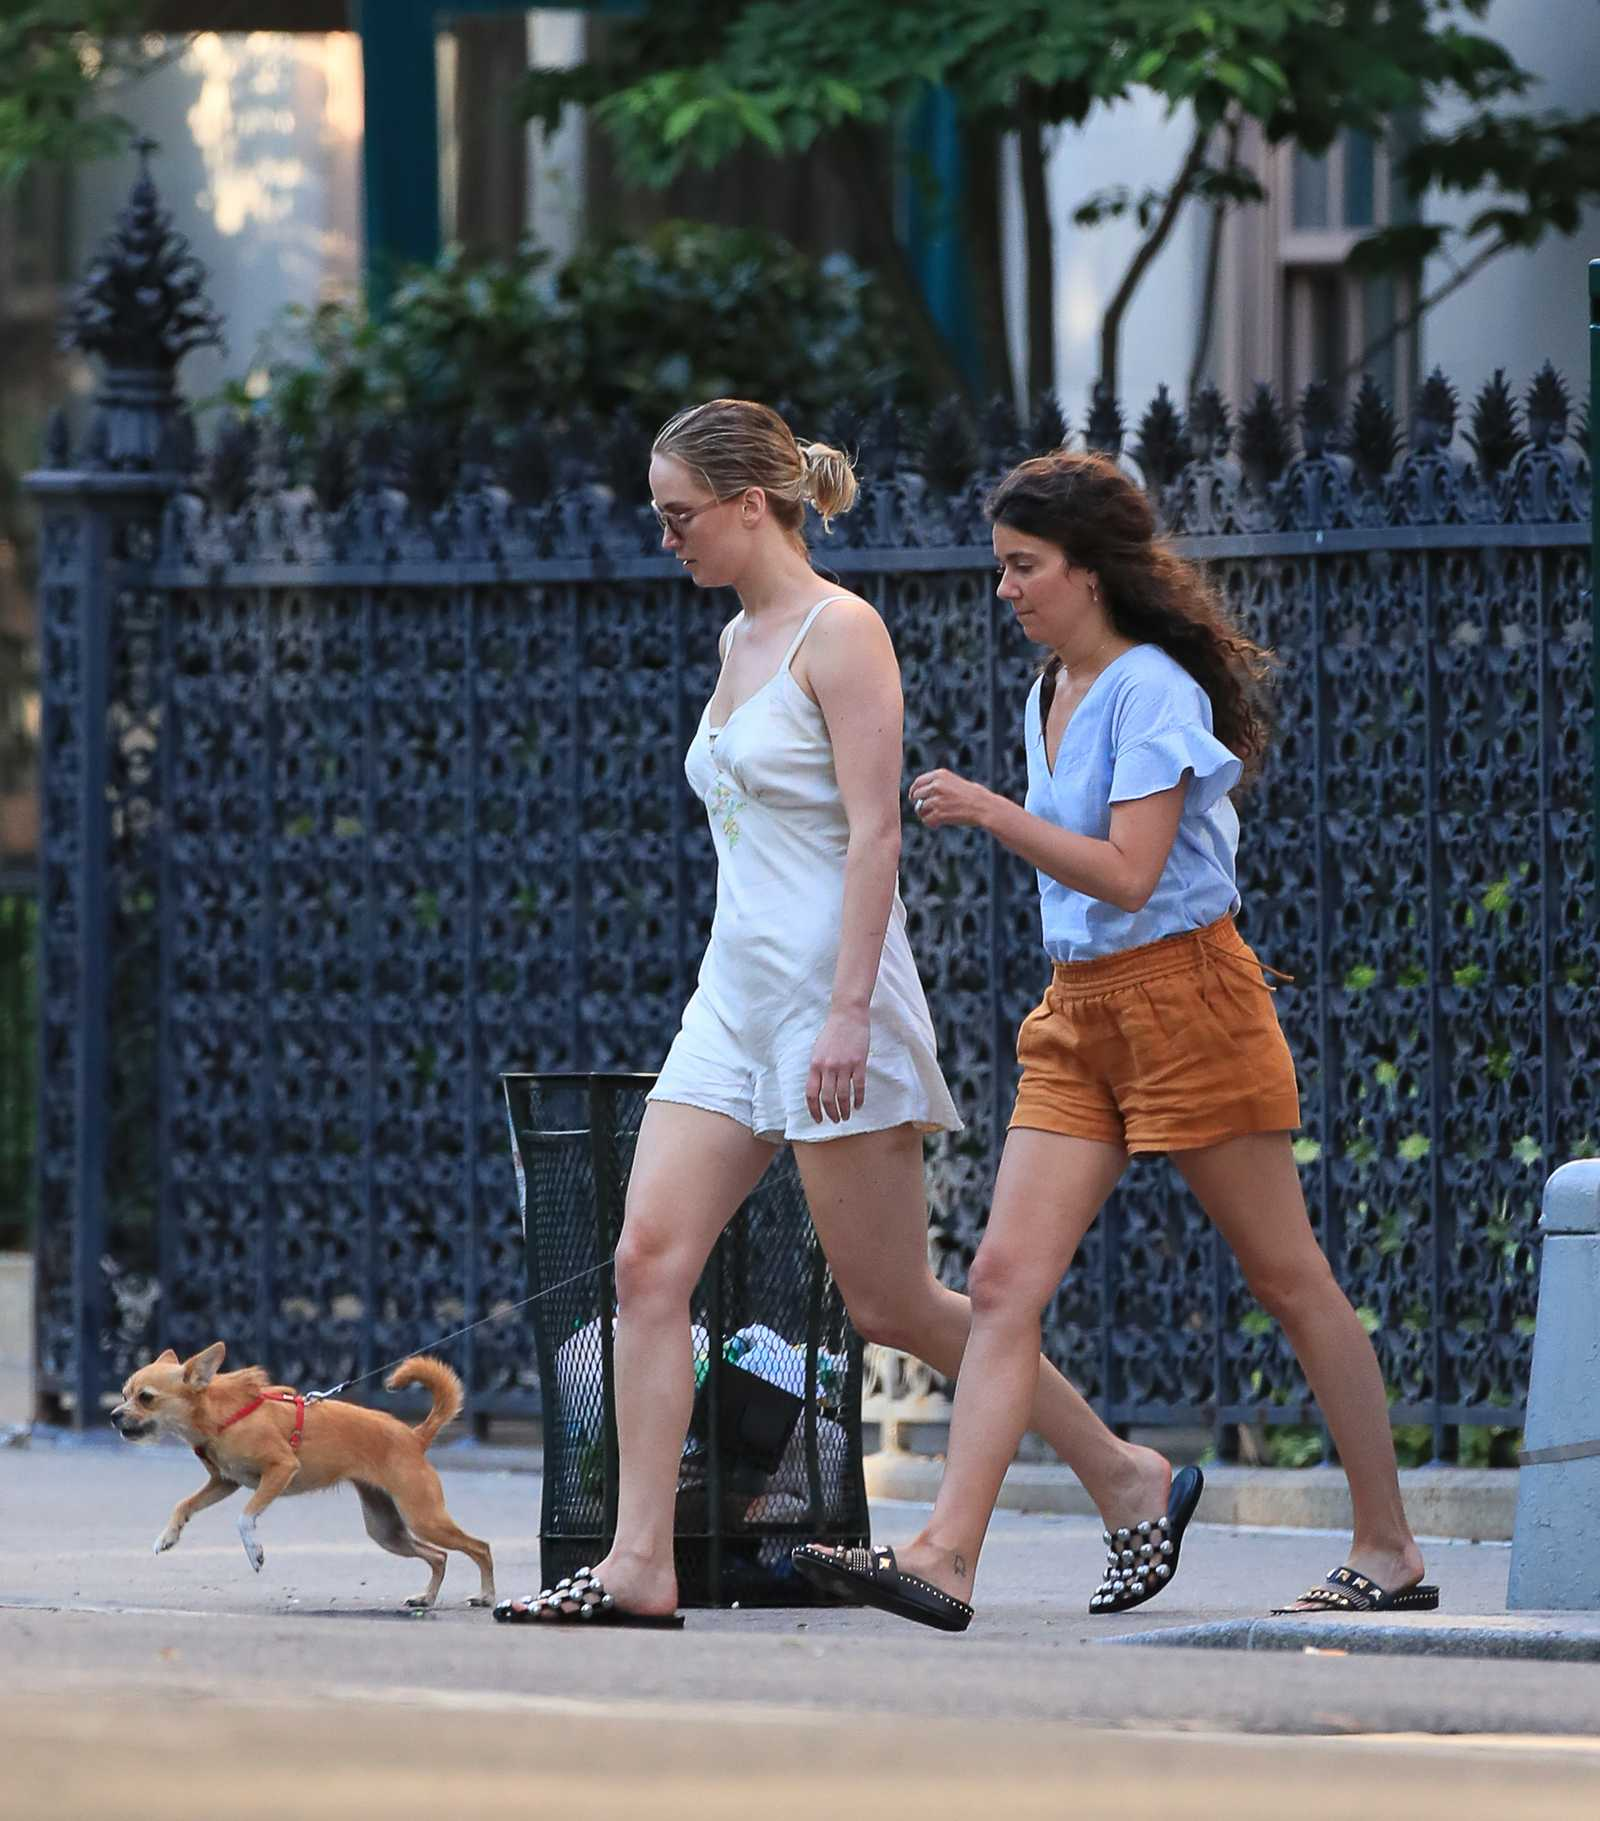 http://jenniferlawrencedaily.com/gallery/albums/userpics/10001/Jennifer_Lawrence_-_At_the_park_in_NYC_on_June_15-01.jpg